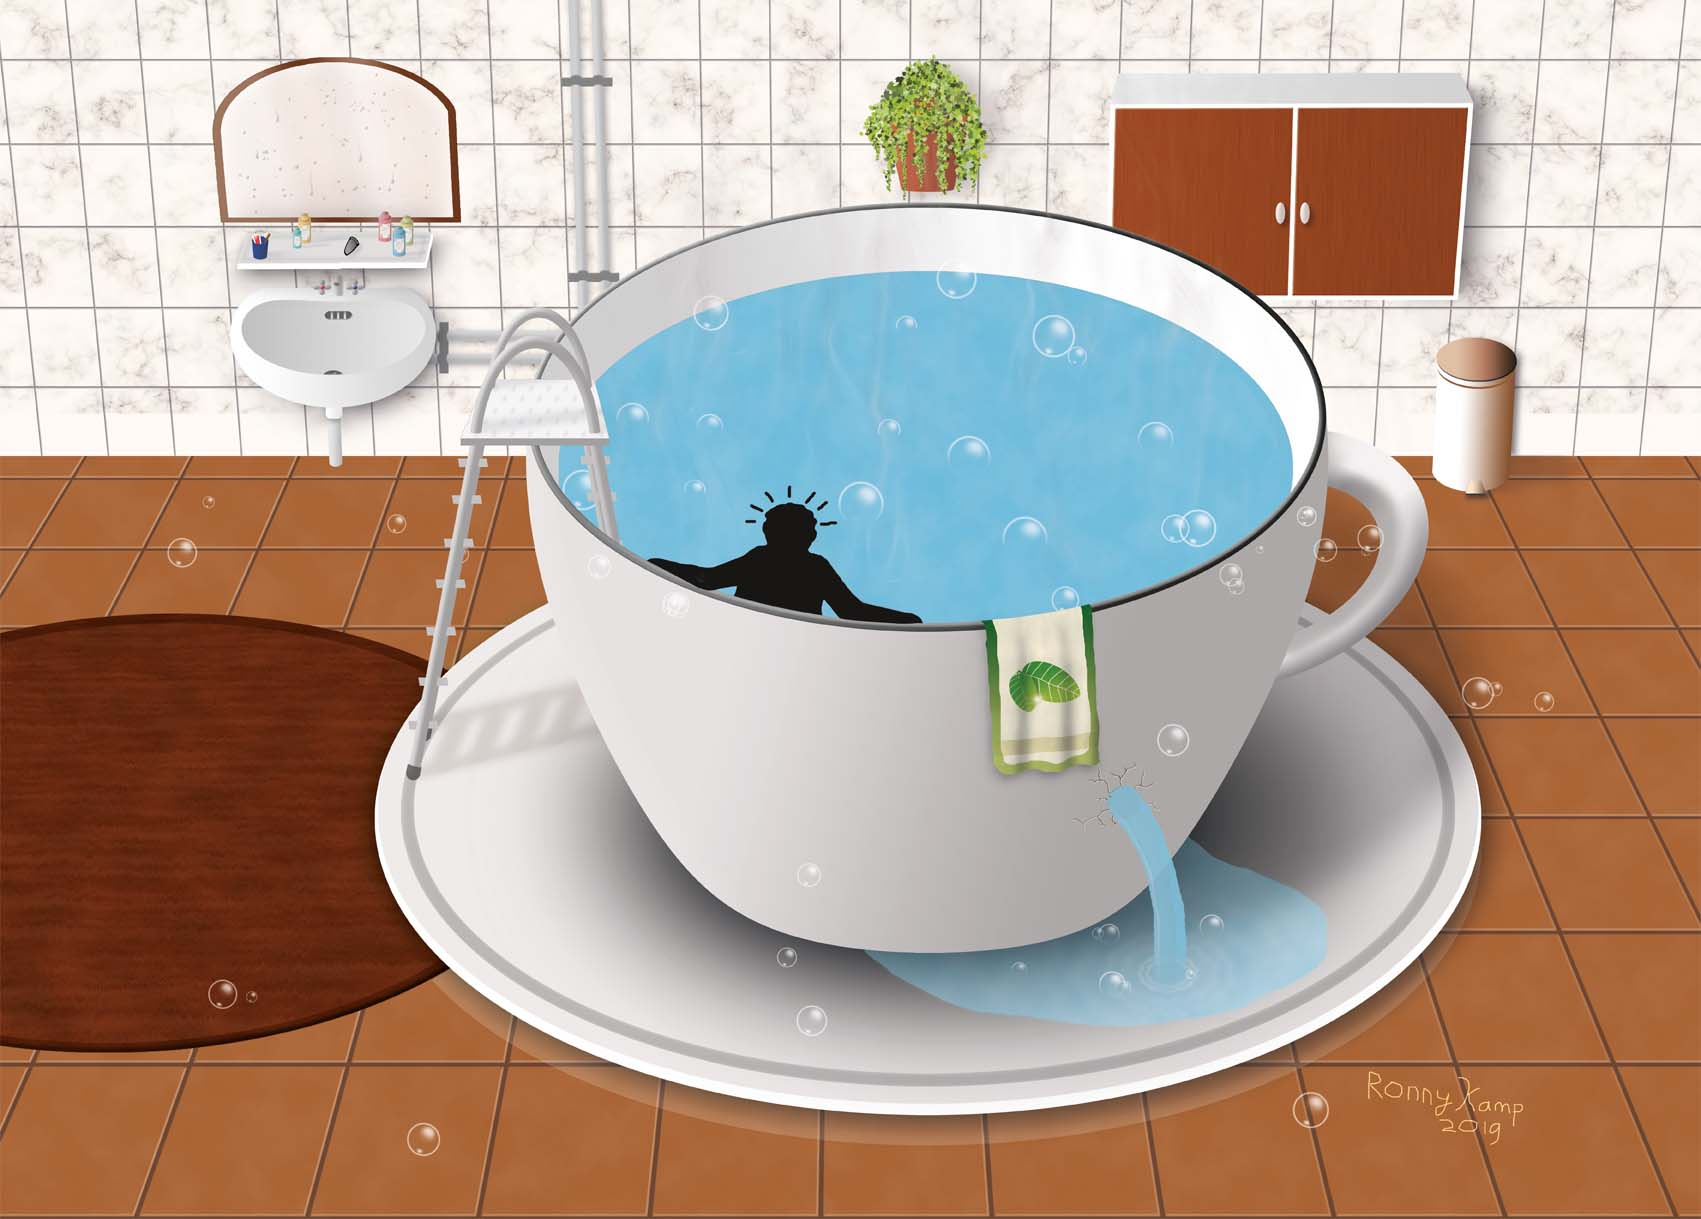 Bath in the shap of a cup of tea.